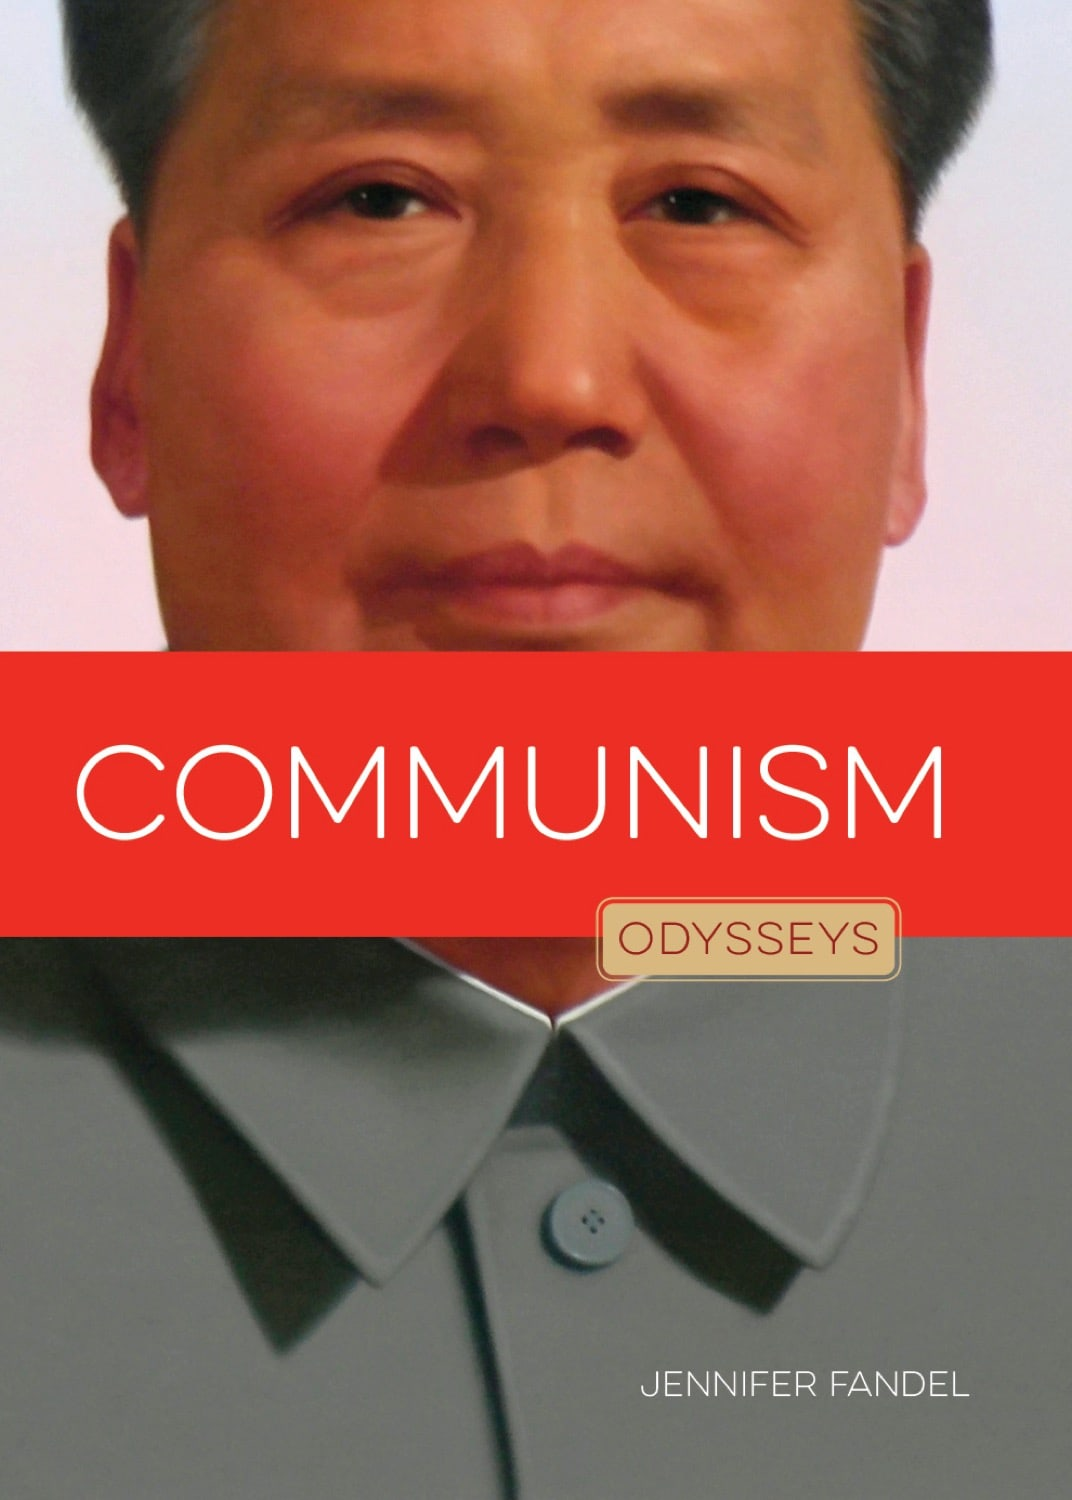 Odysseys in Government: Communism